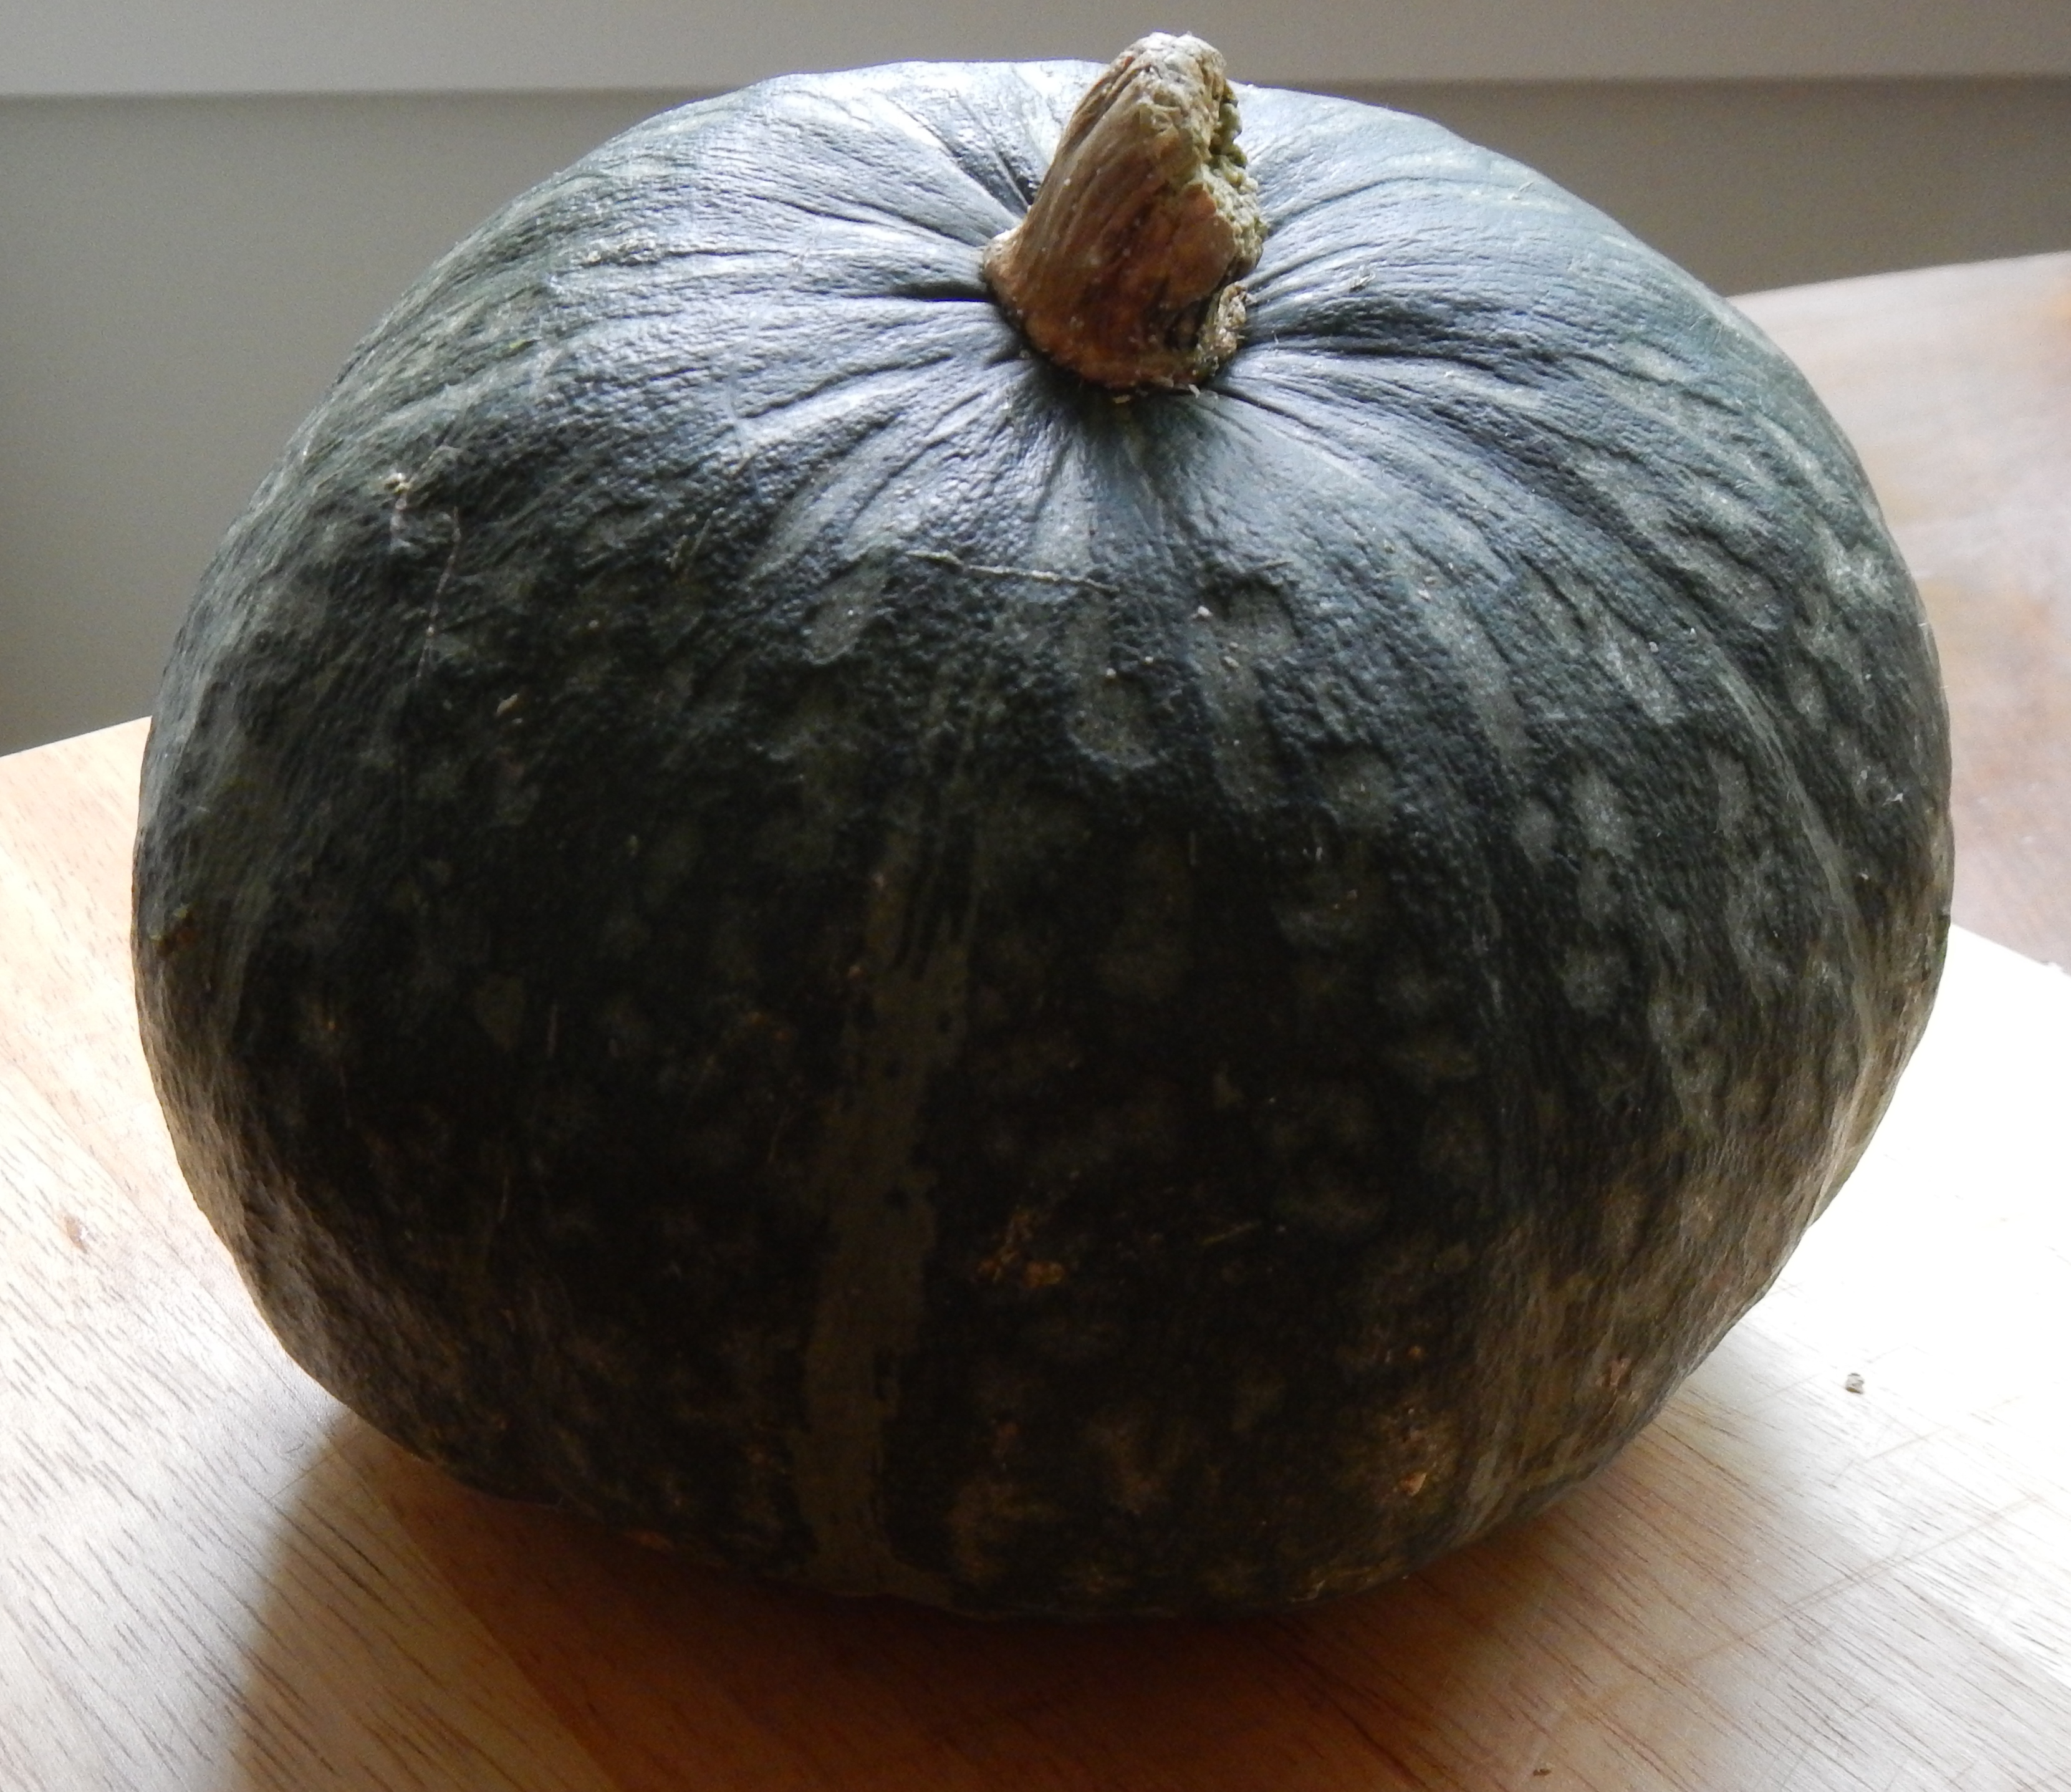 red kabocha squash how to cook